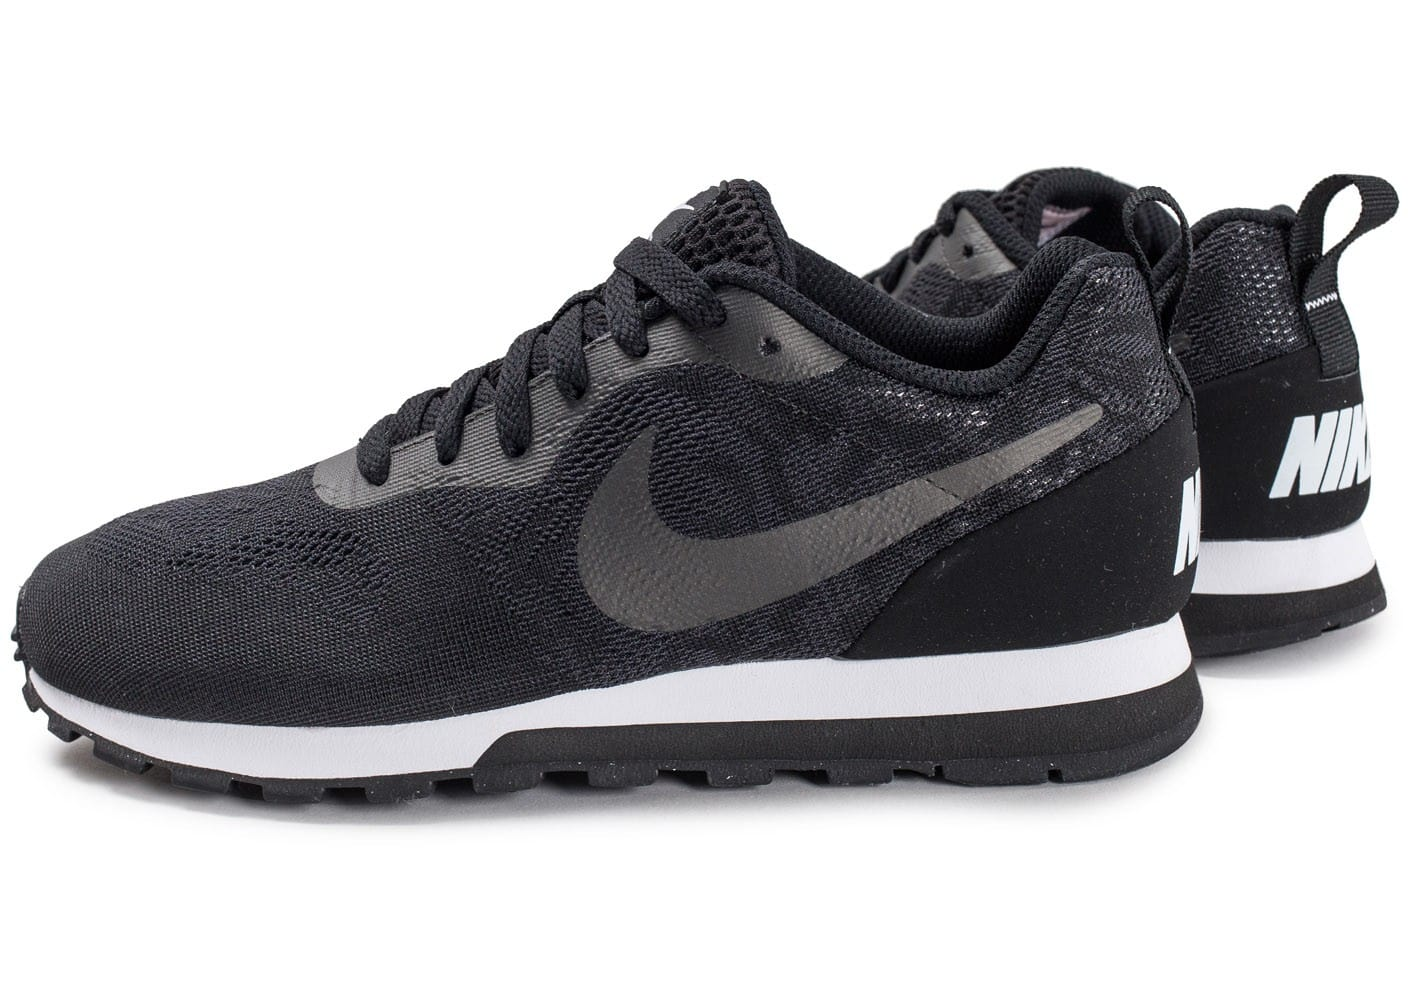 nike md runner 2 breathe w noire chaussures femme chausport. Black Bedroom Furniture Sets. Home Design Ideas